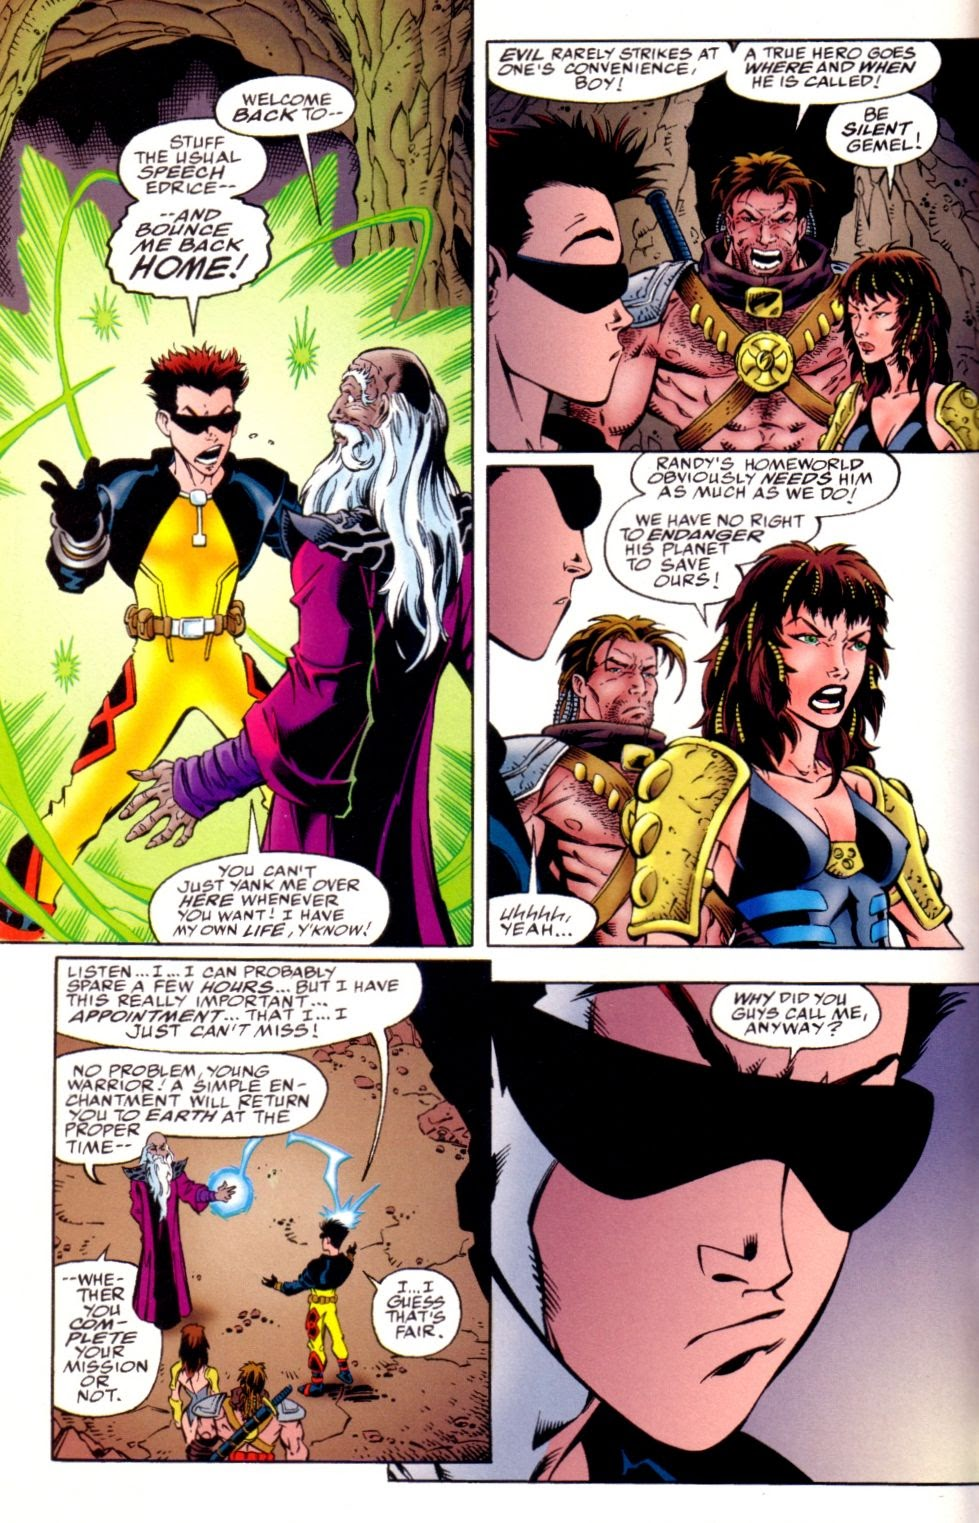 Read online Randy O'Donnell is The M@N comic -  Issue #3 - 6